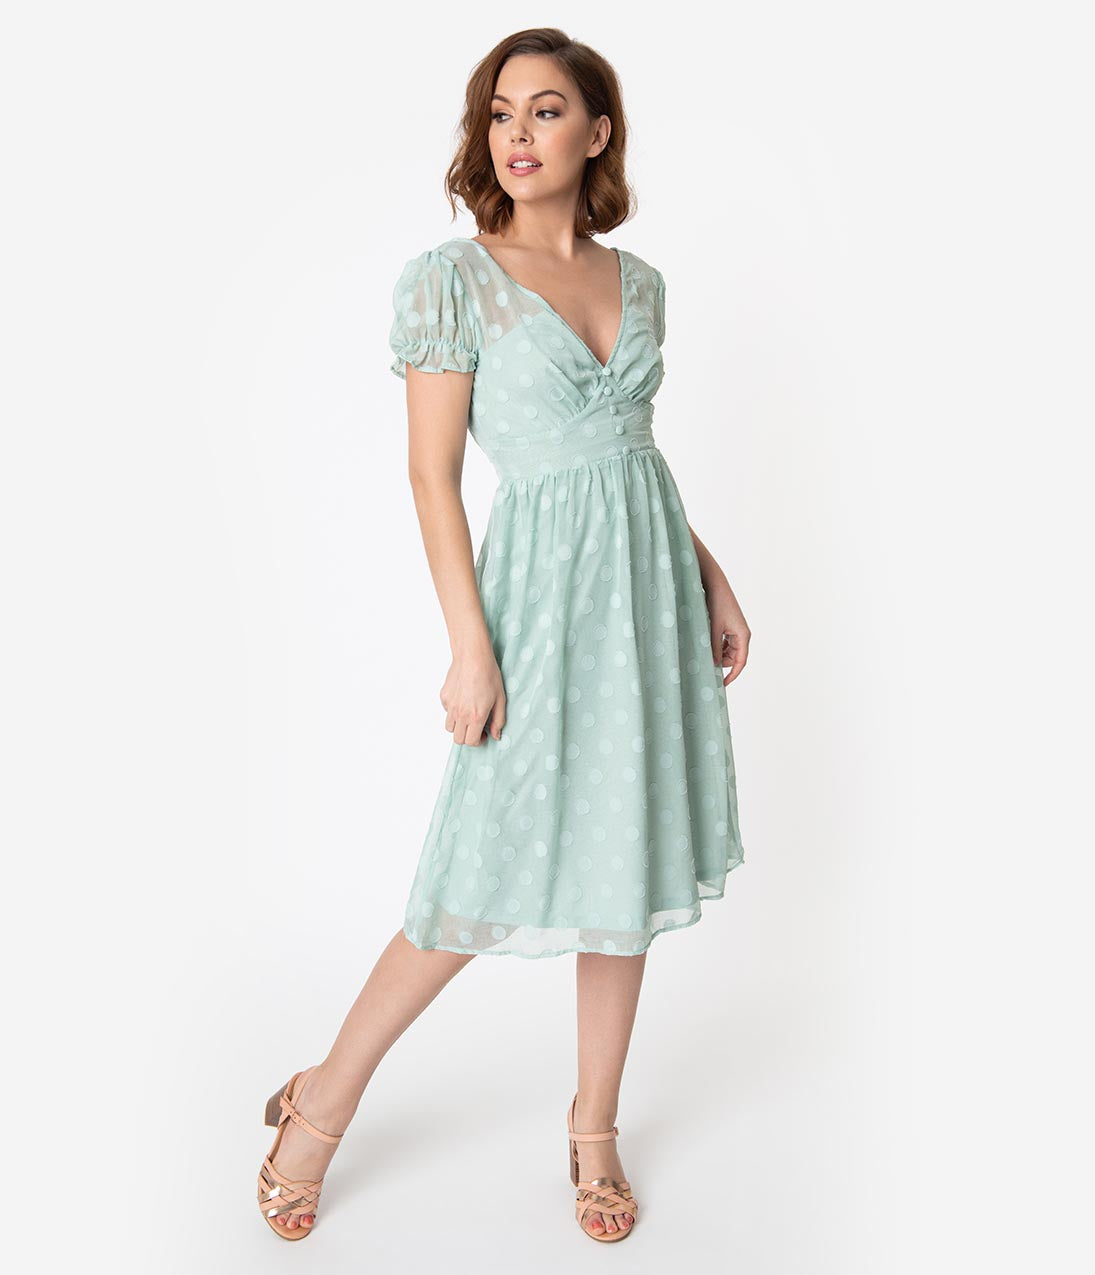 1940s Dresses | 40s Dress, Swing Dress Polka Dot Soft Textured Weave Fit  Flare Dress $58.00 AT vintagedancer.com